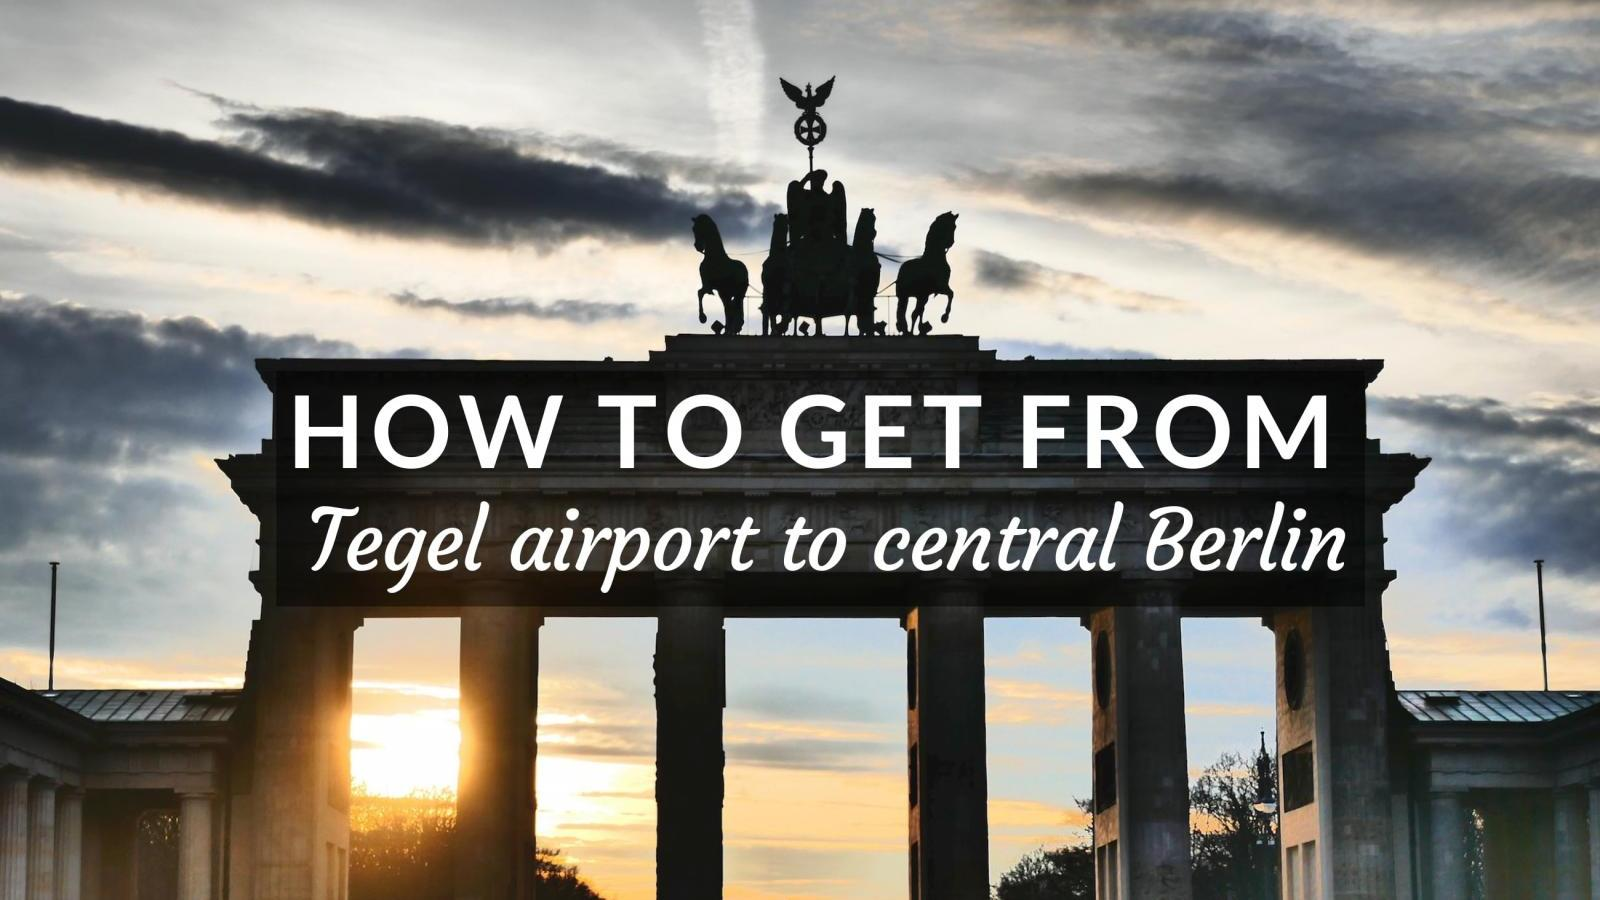 How to get from Tegel airport to Berlin city